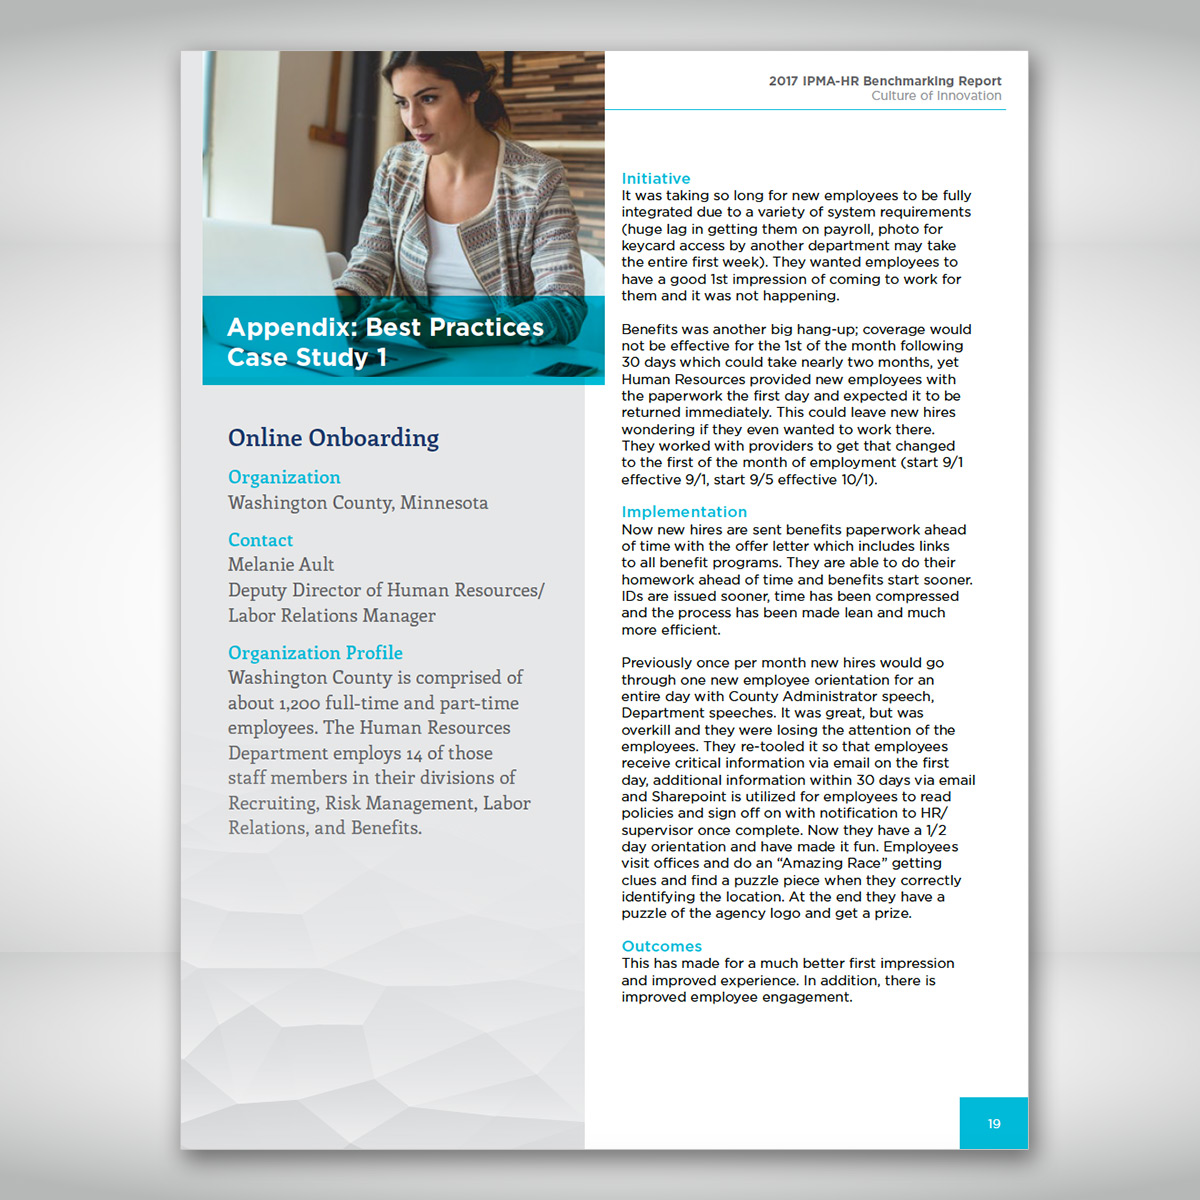 IPMA-HR Benchmarking Report Case Study Page